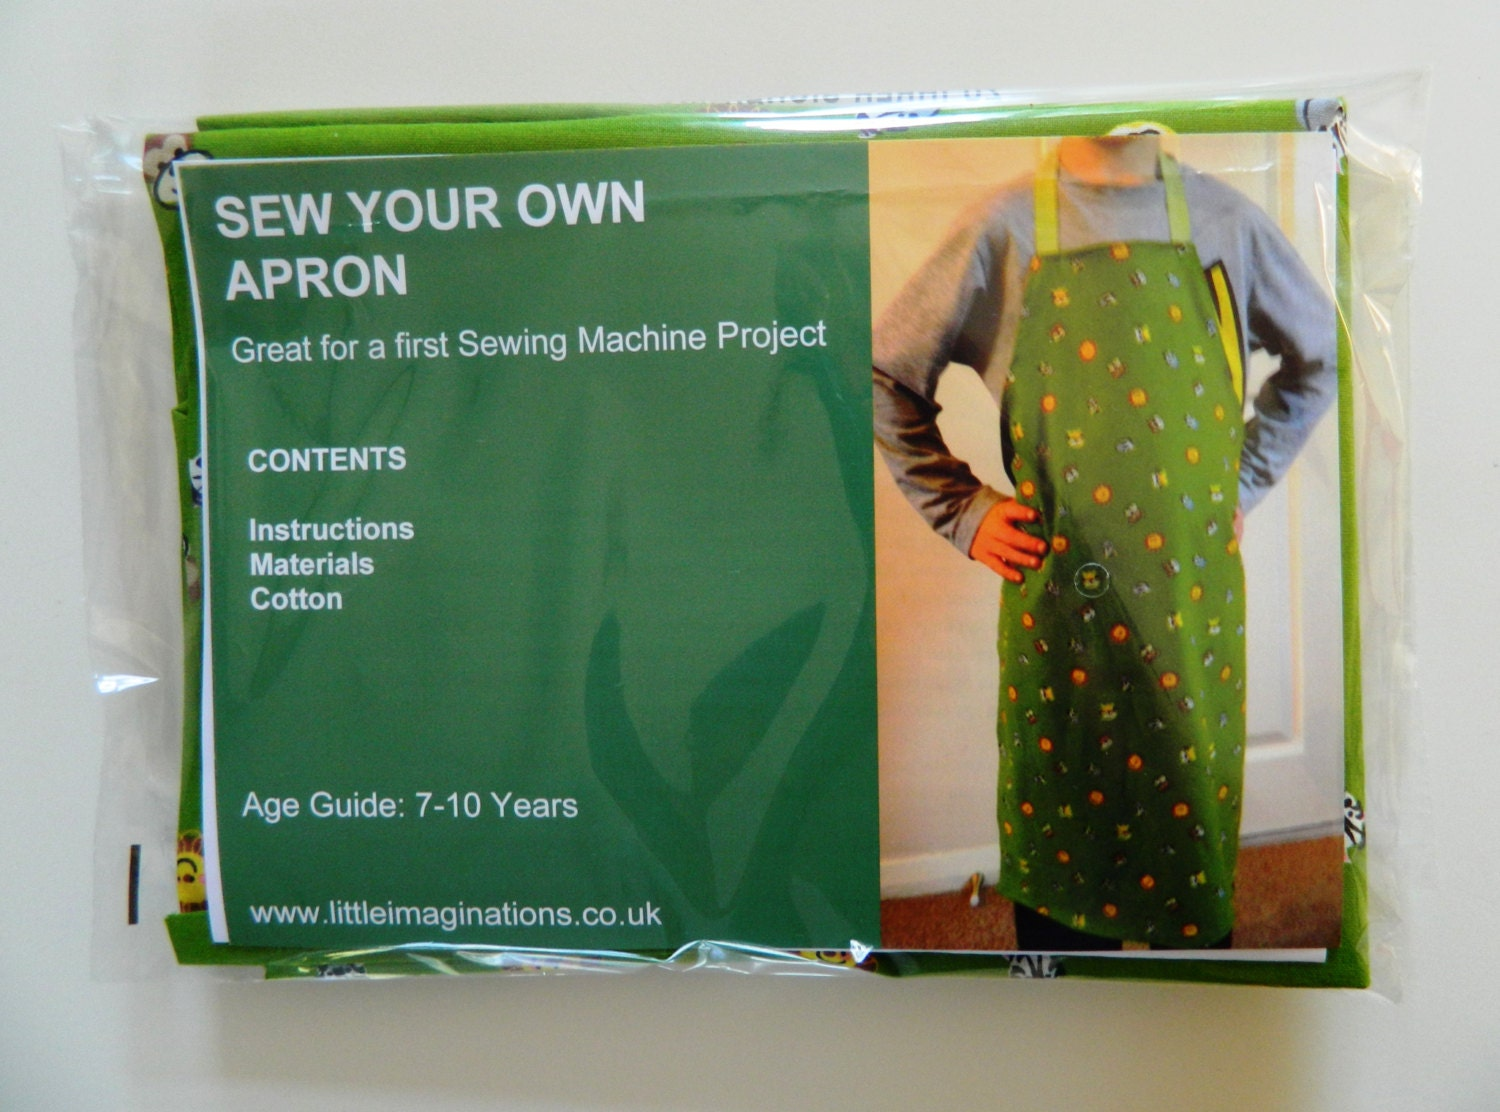 Sew Your Own Apron Kids First Sewing Machine Project Kit